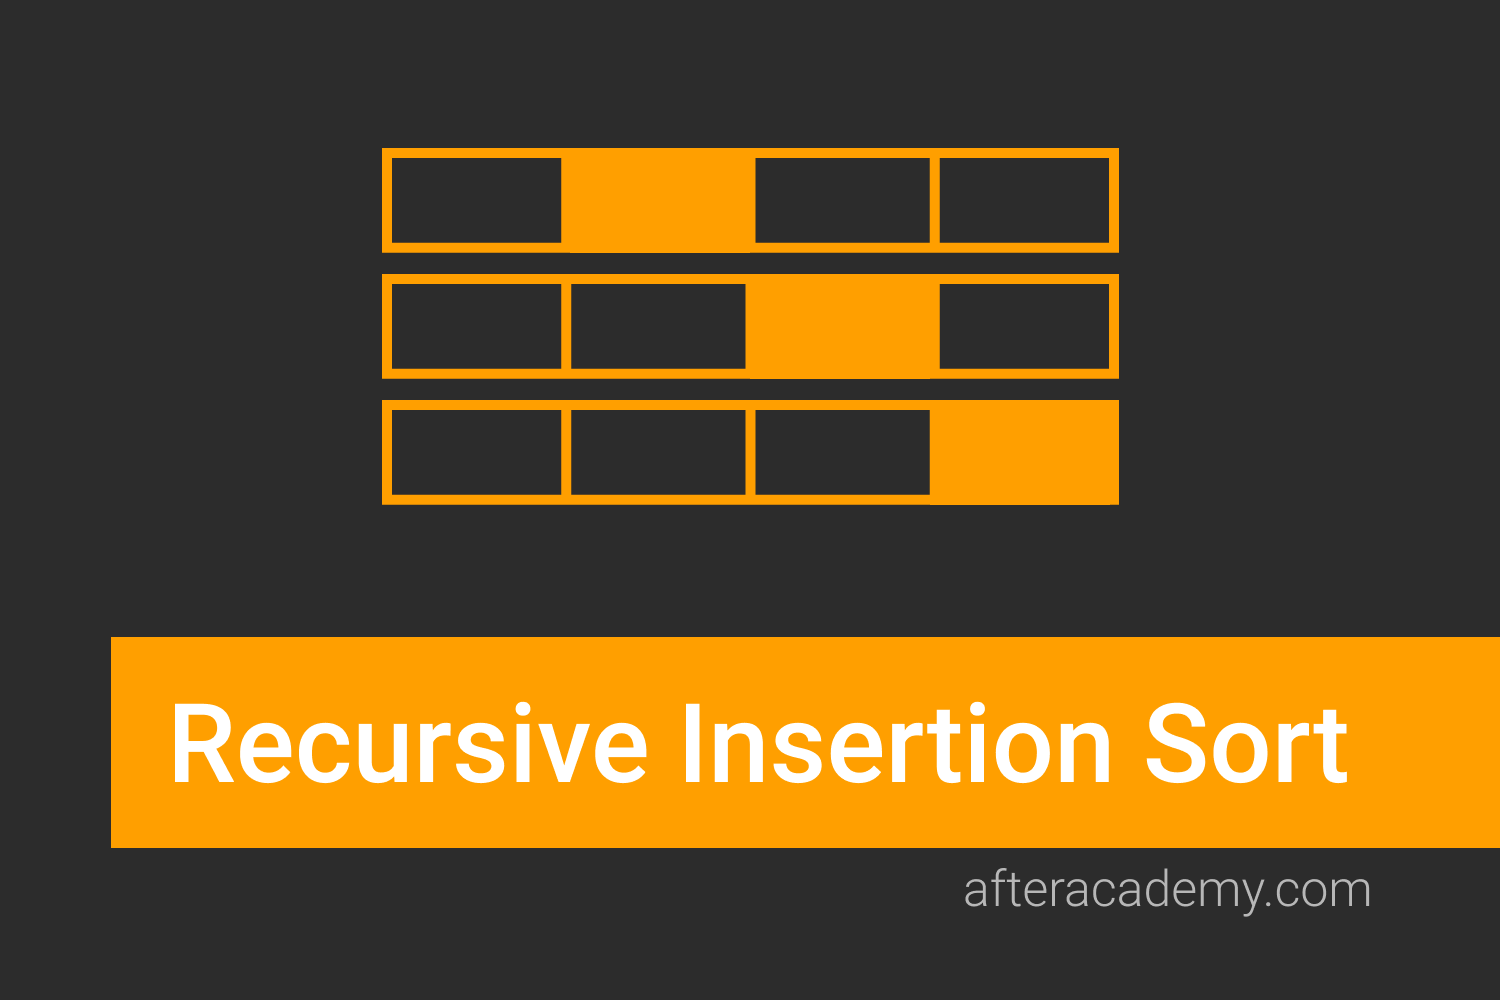 Recursive Insertion Sort